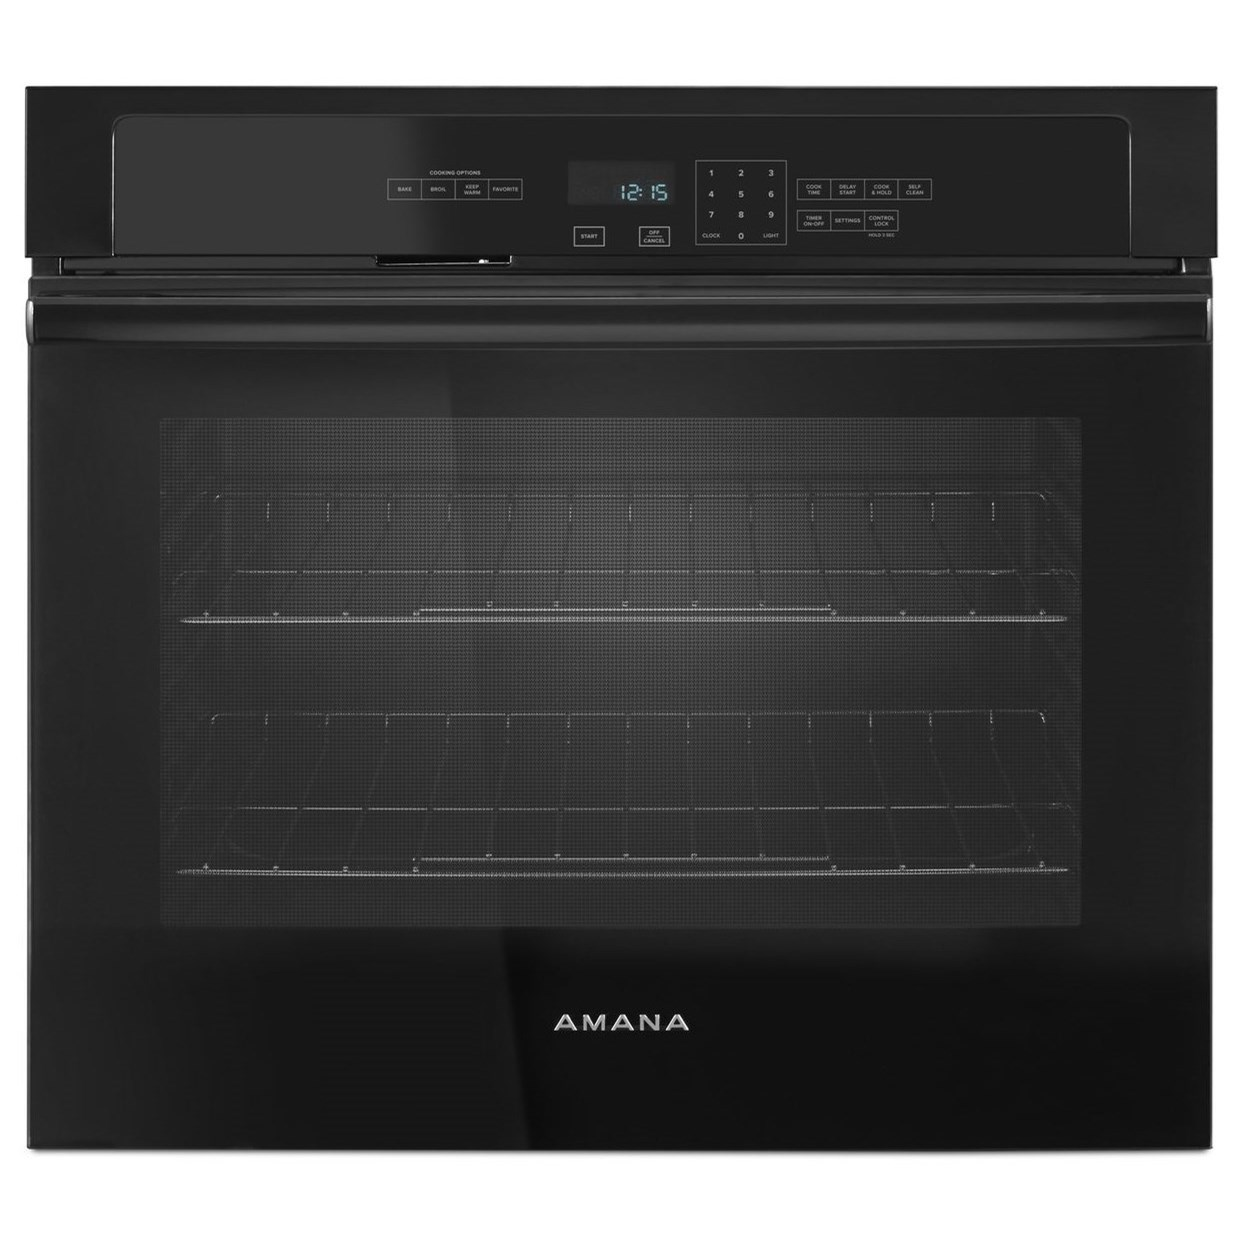 Electric Wall Ovens - Amana 30-inch 5.0 Cu. Ft. Amana® Wall Oven by Amana at Wilcox Furniture